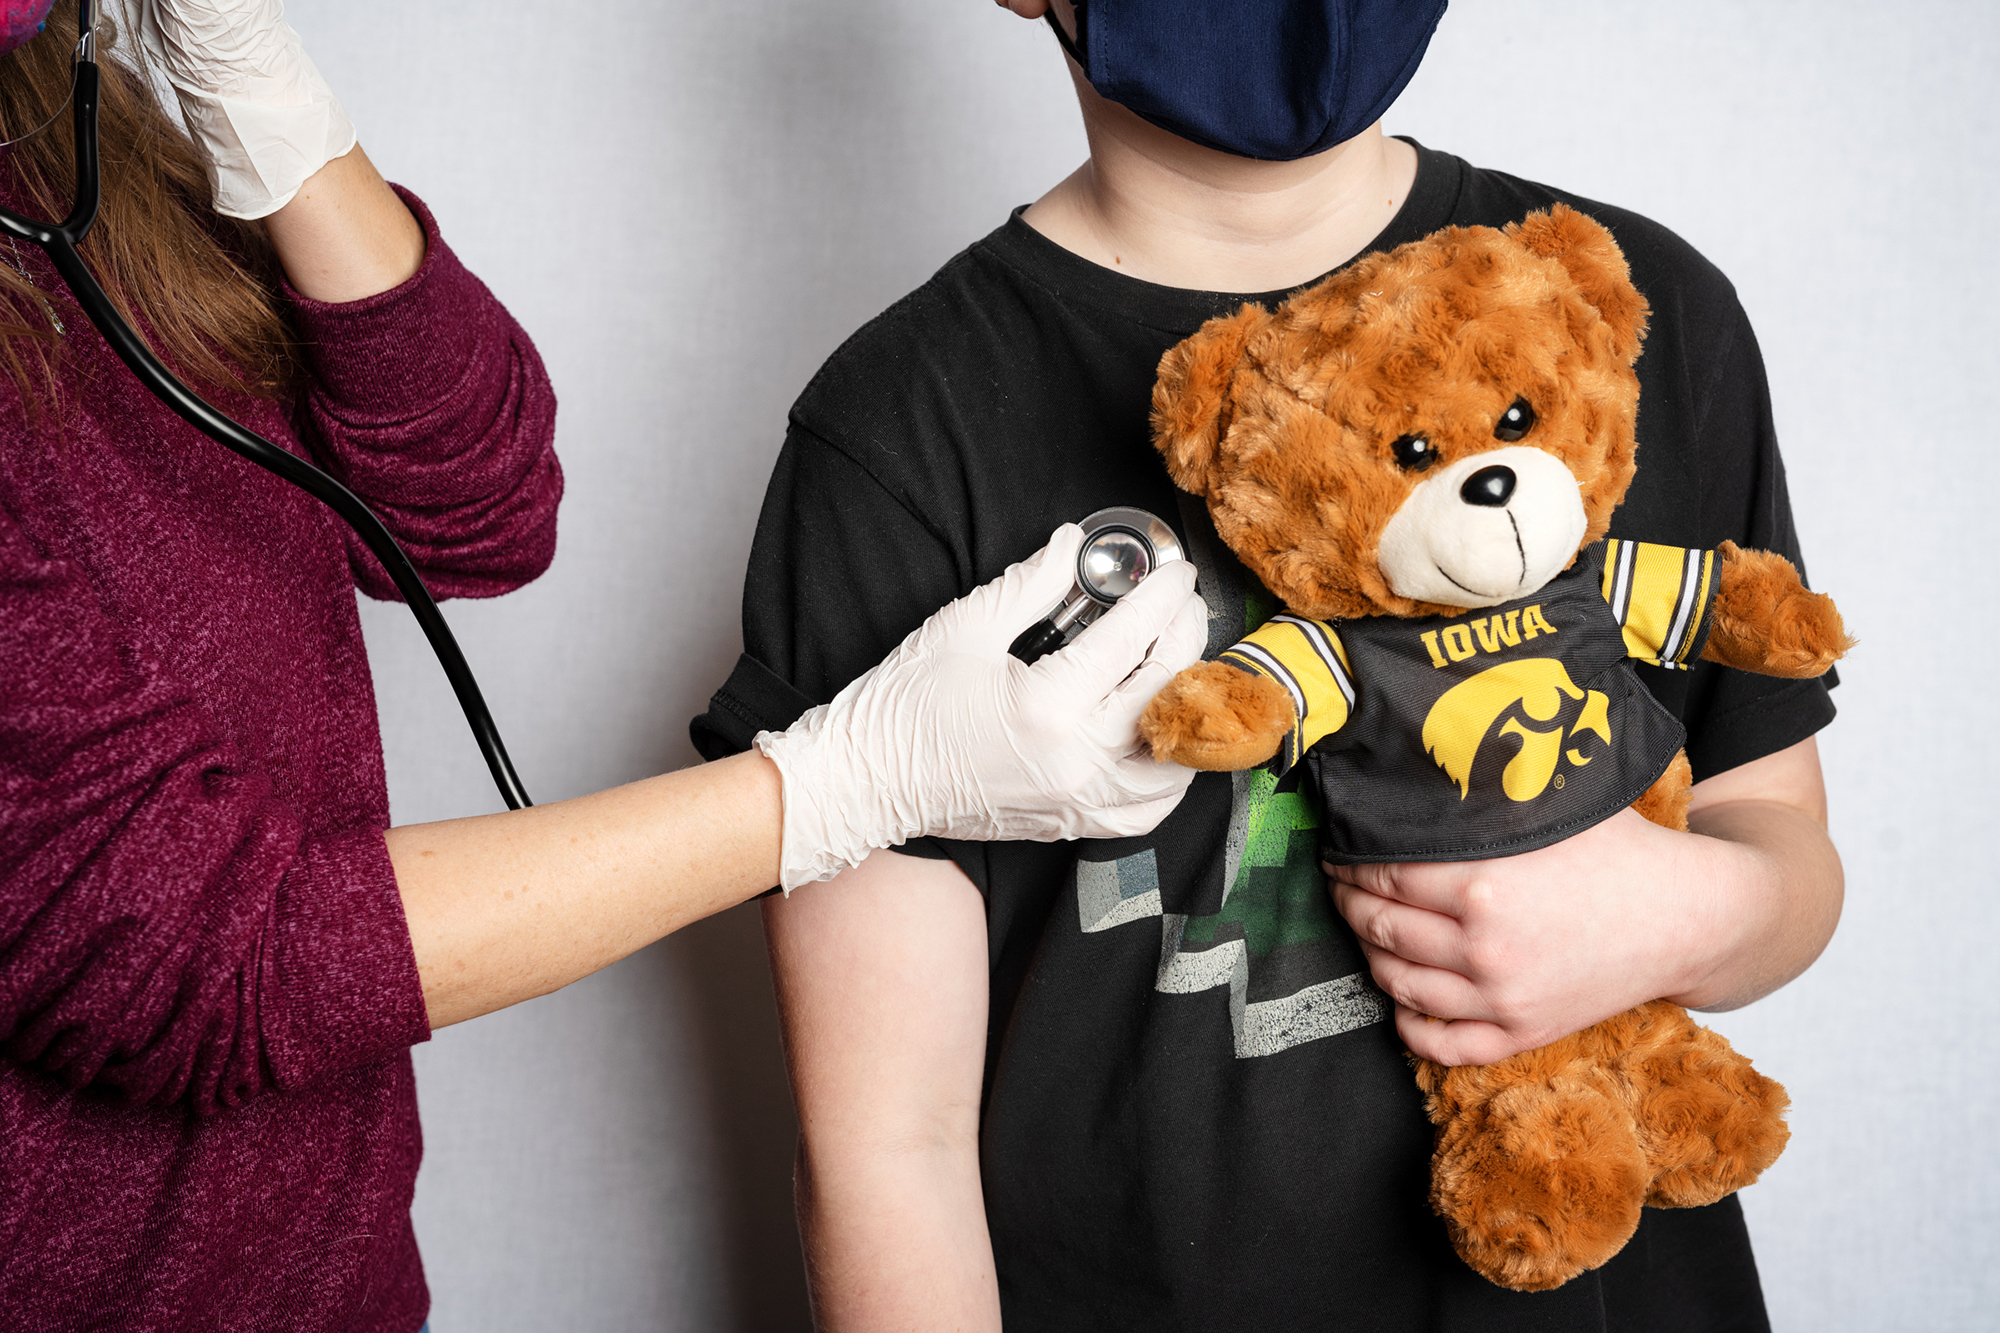 A child is examined while holding a teddy bear